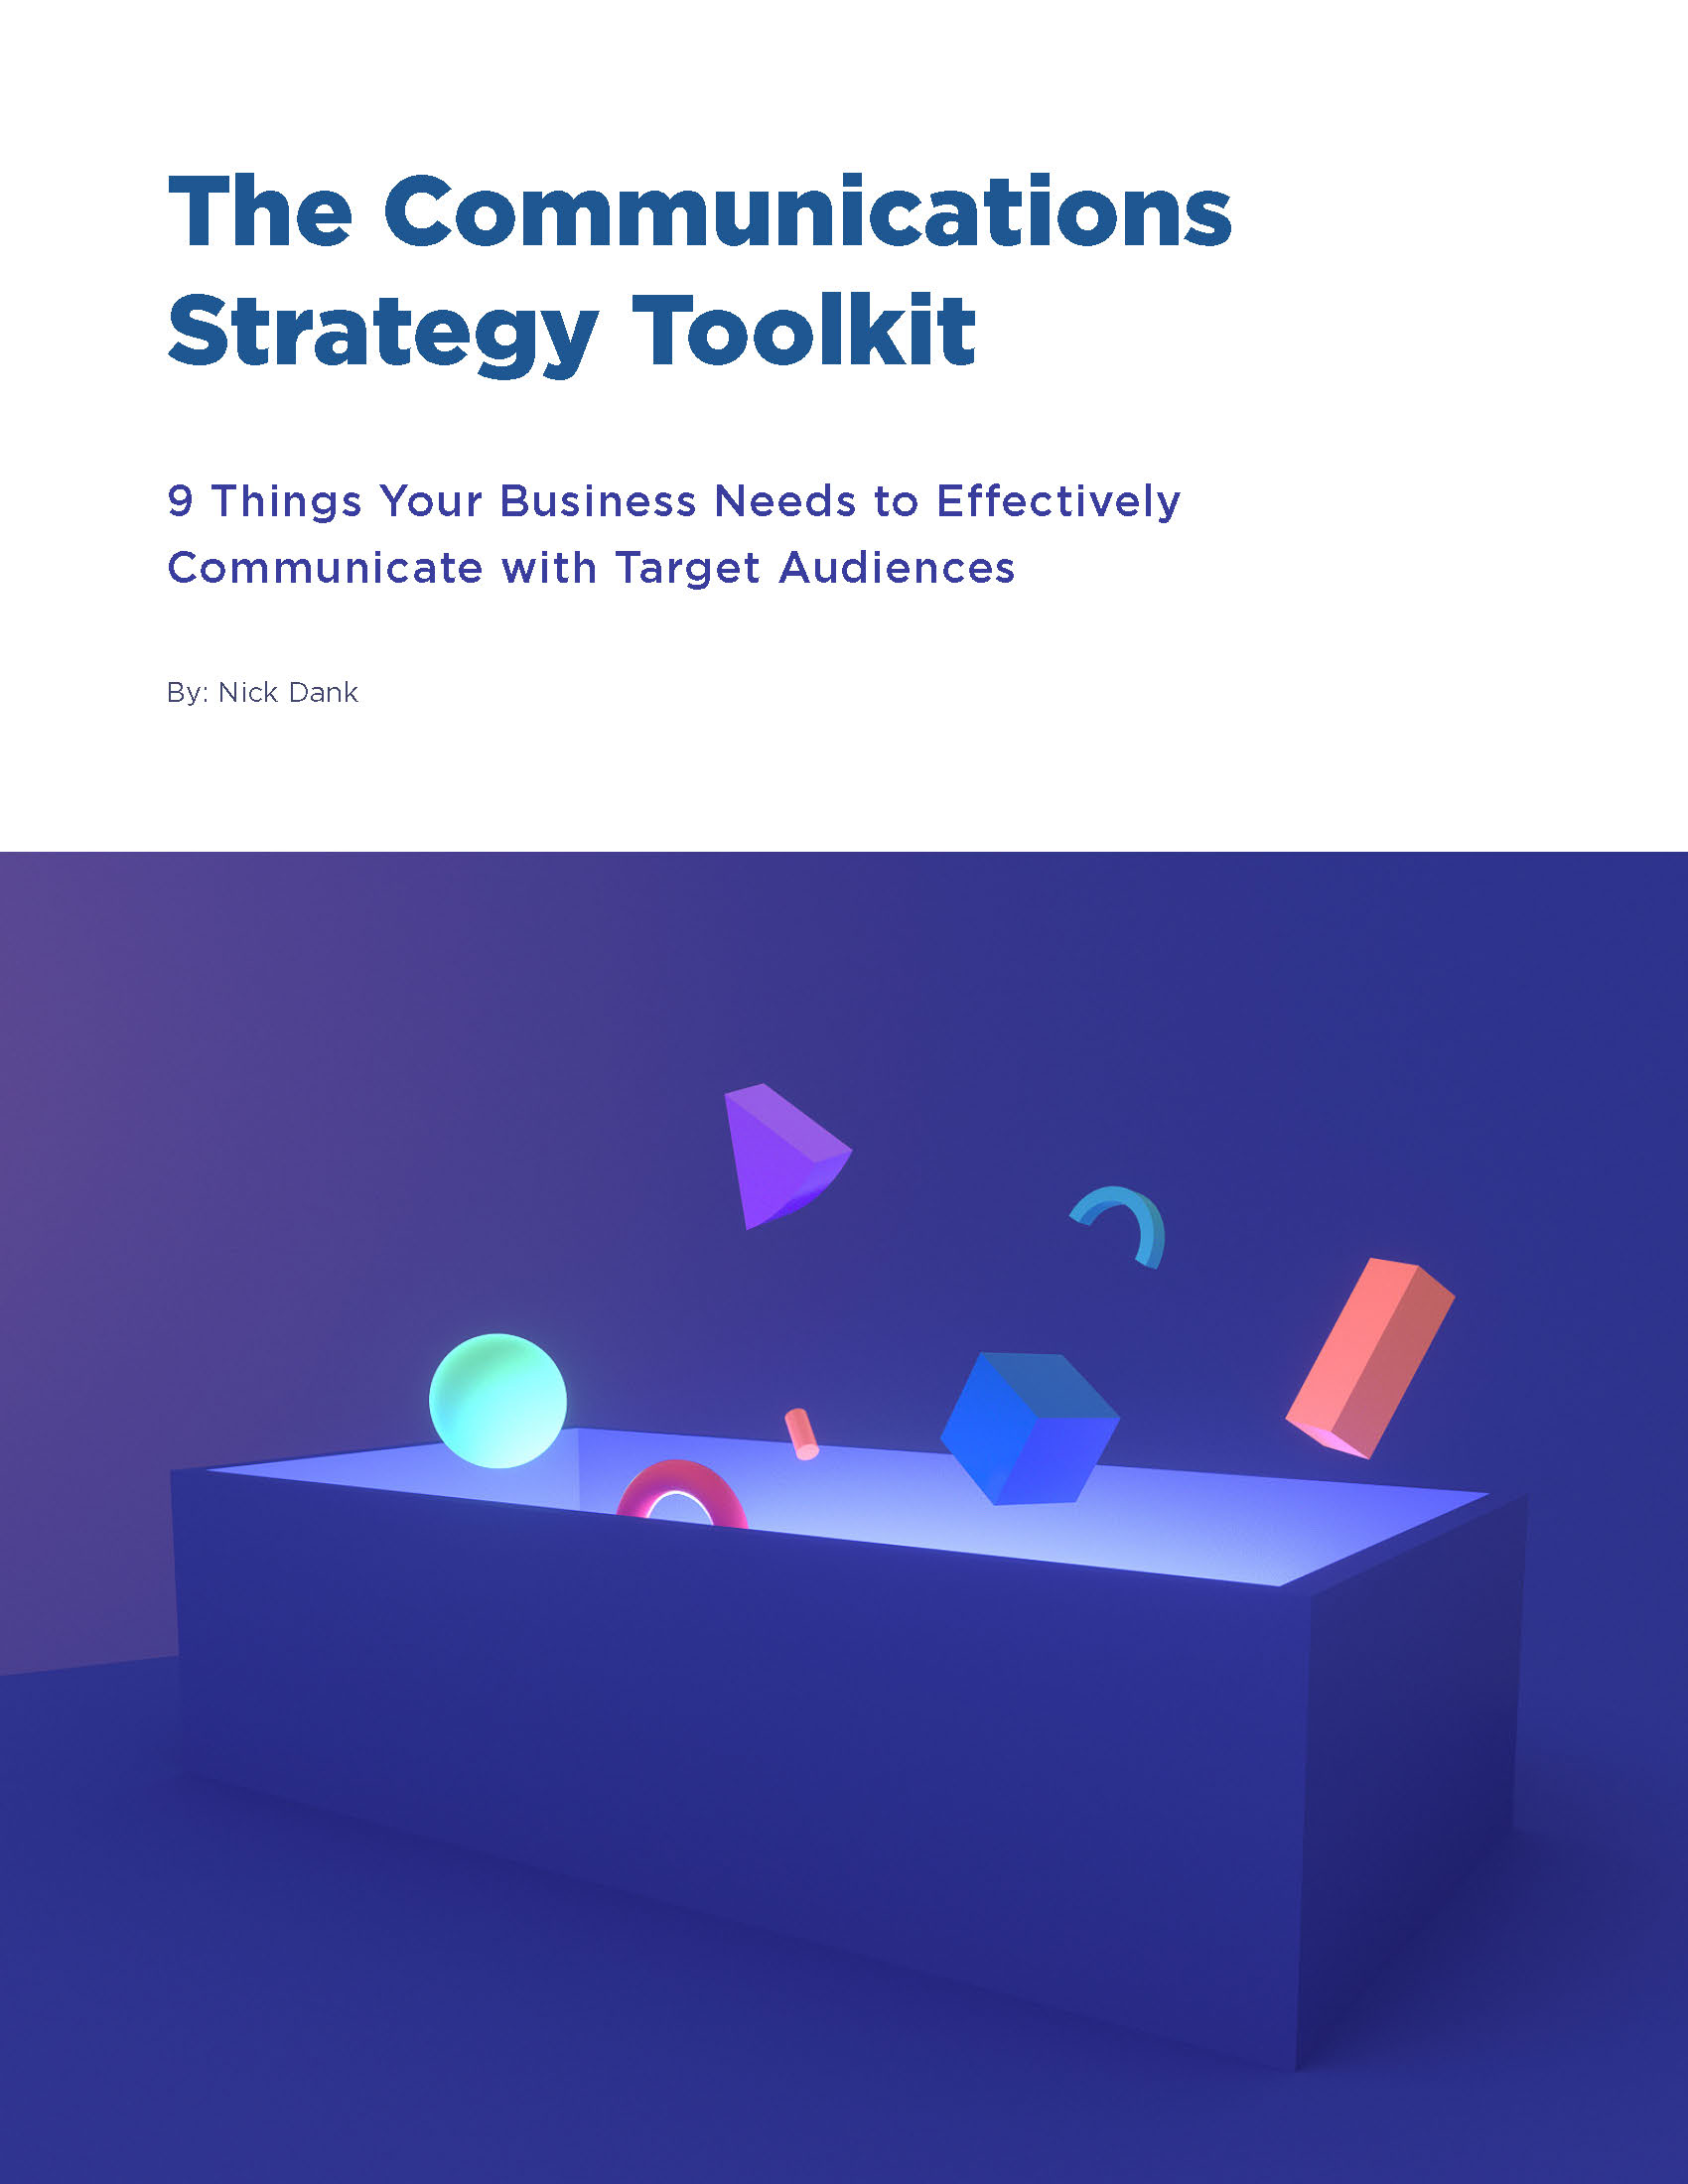 The Communications Strategy Toolkit, 9 things your business needs to effectively communicate with target audiences. By Nick Dank